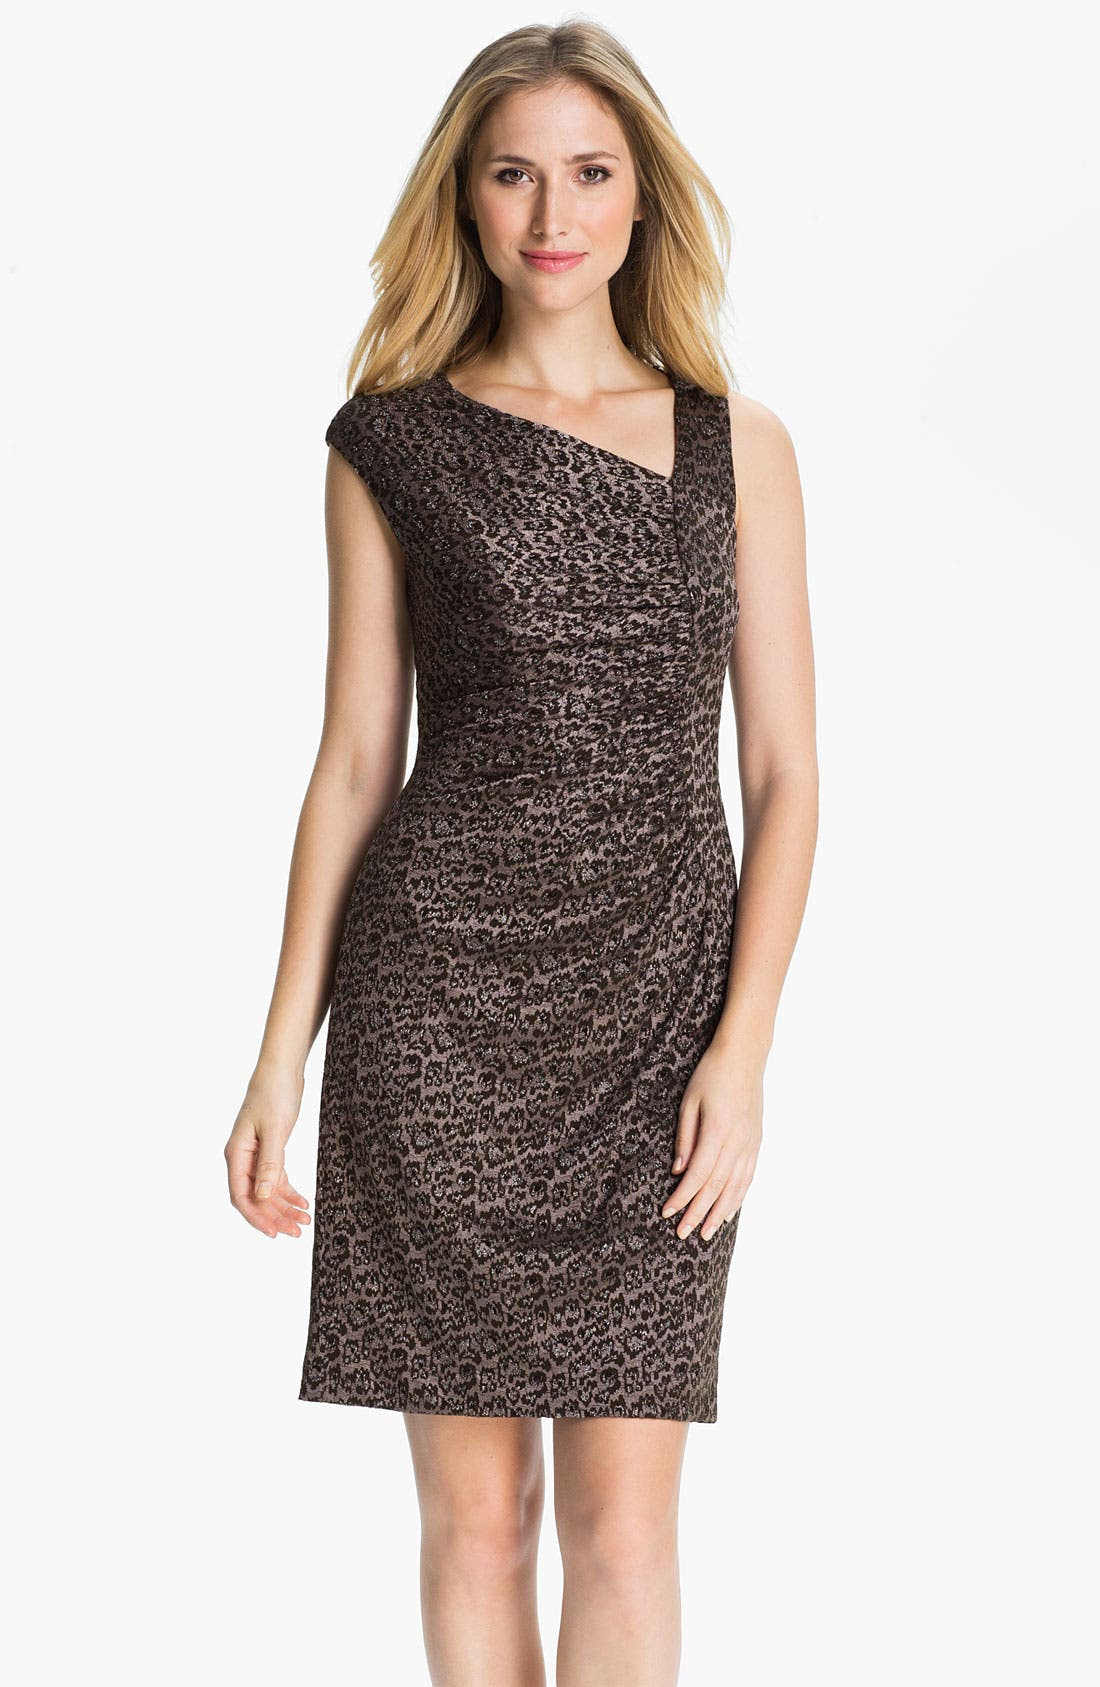 Alternate Image 1 Selected - Adrianna Papell Asymmetrical Neck Textured Sheath Dress